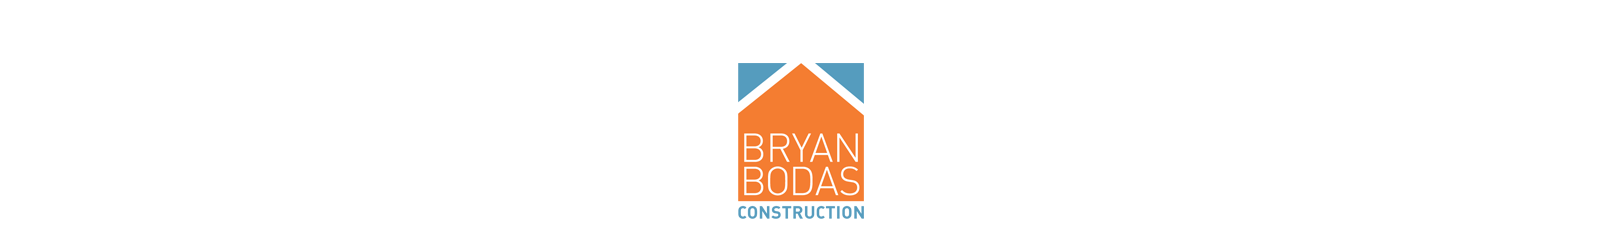 Bryan Bodas Construction Logo